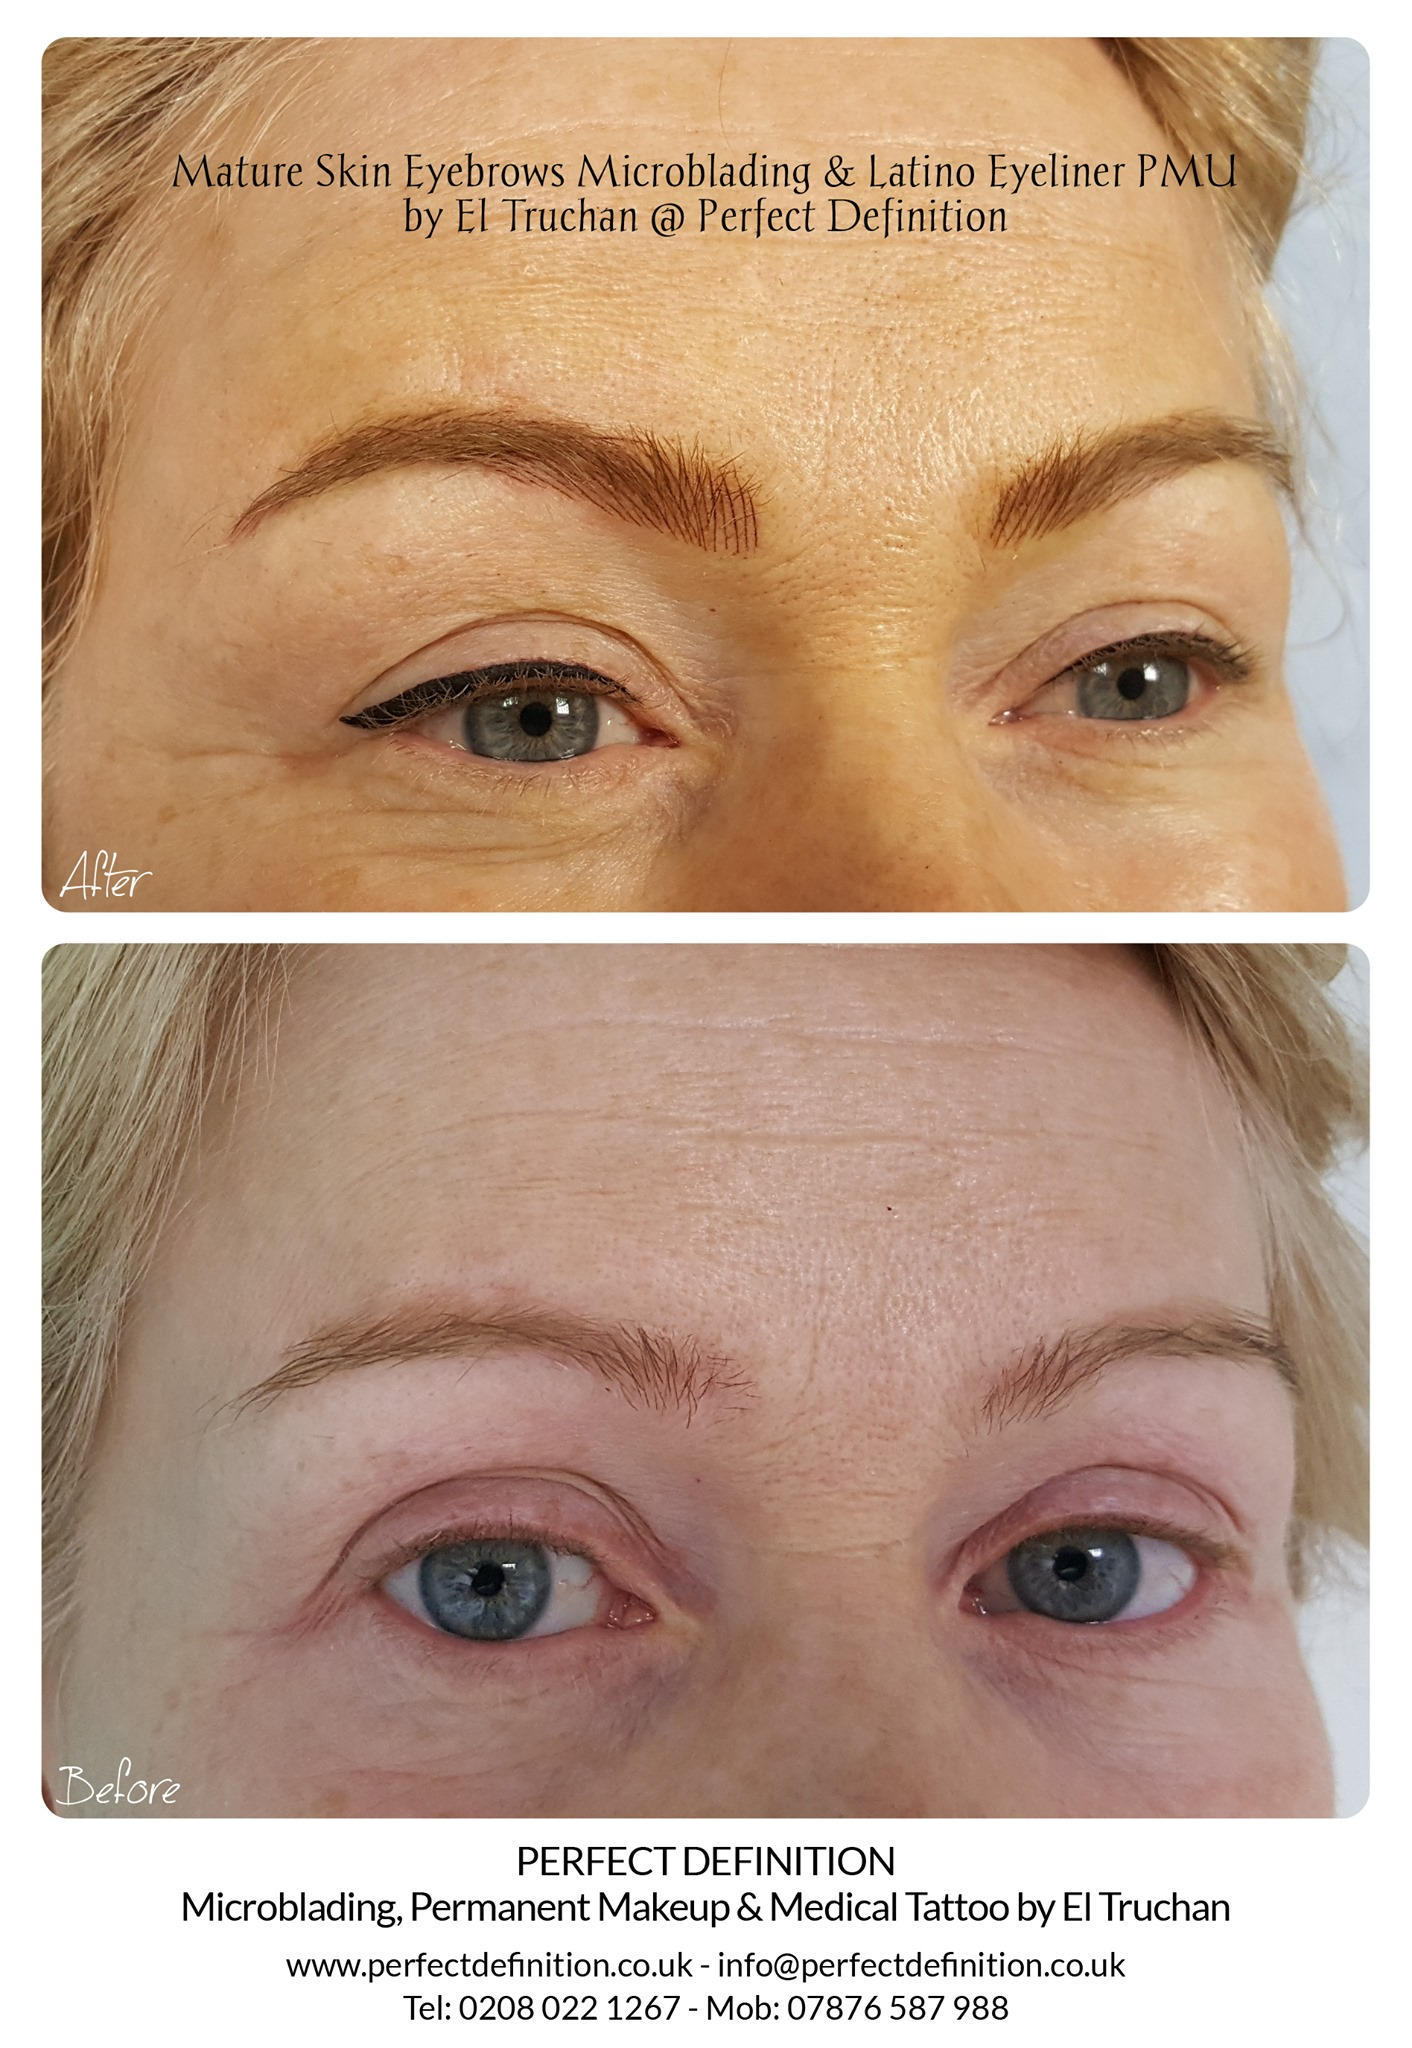 Mature Skin Eyebrows Microblading & Lati